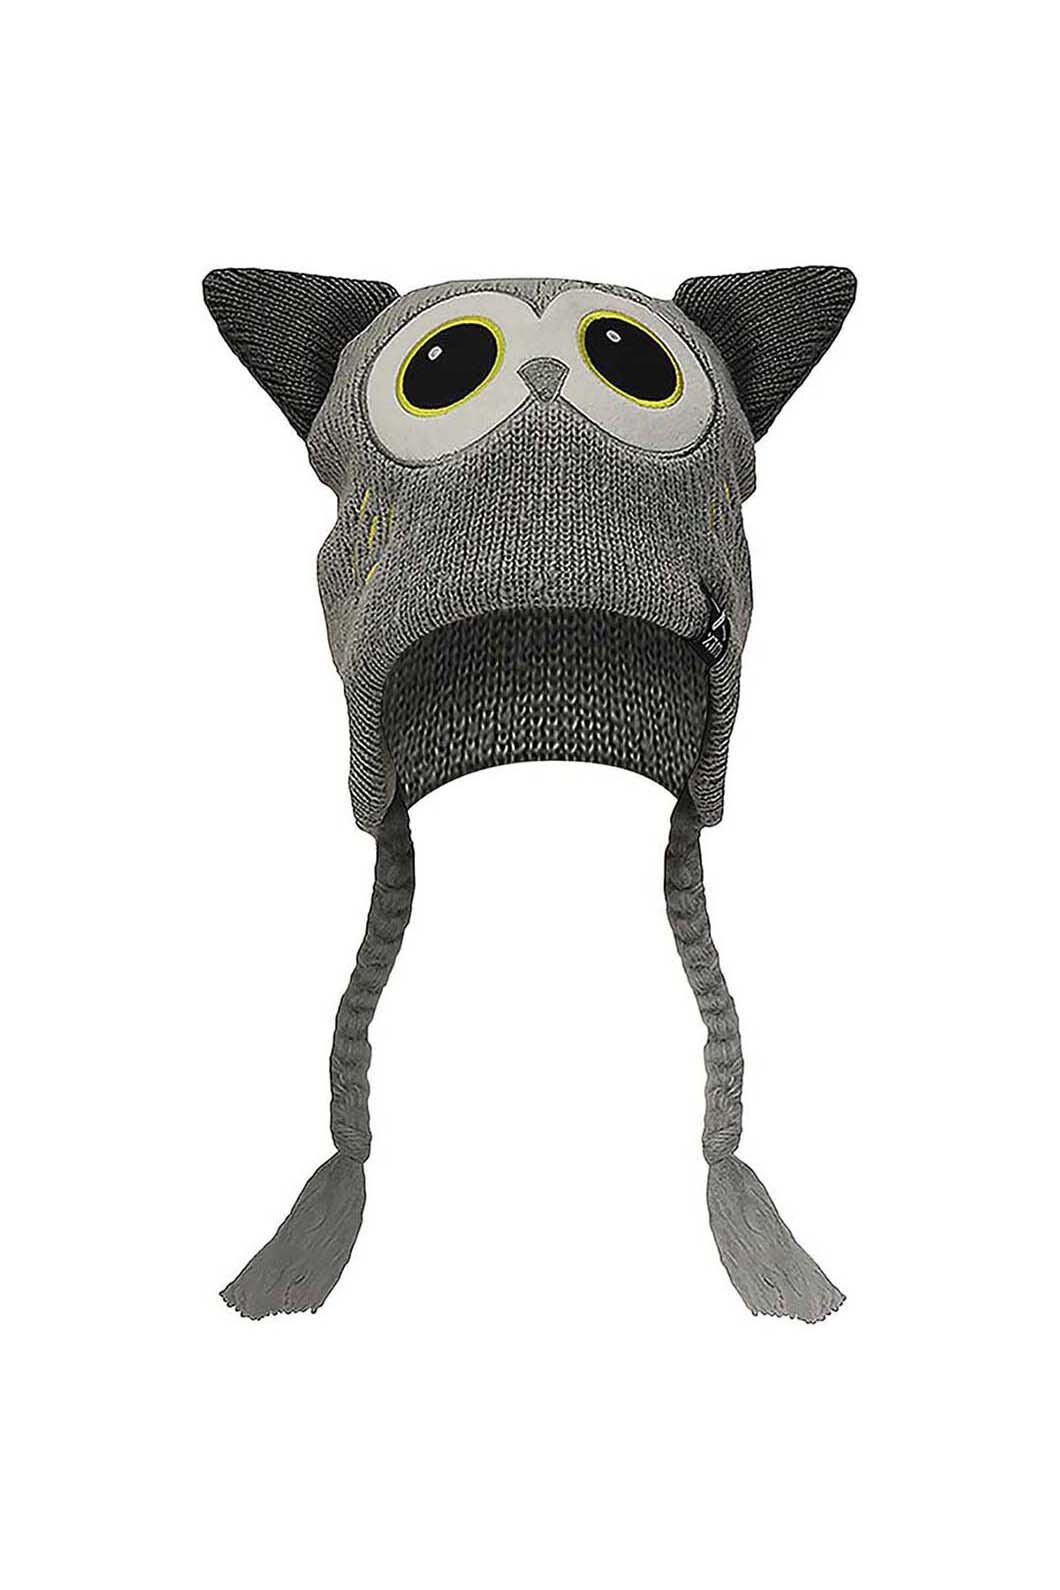 Zoolander Kids' Teethy Beanie  One Size Fits Most, OWL GREY, hi-res